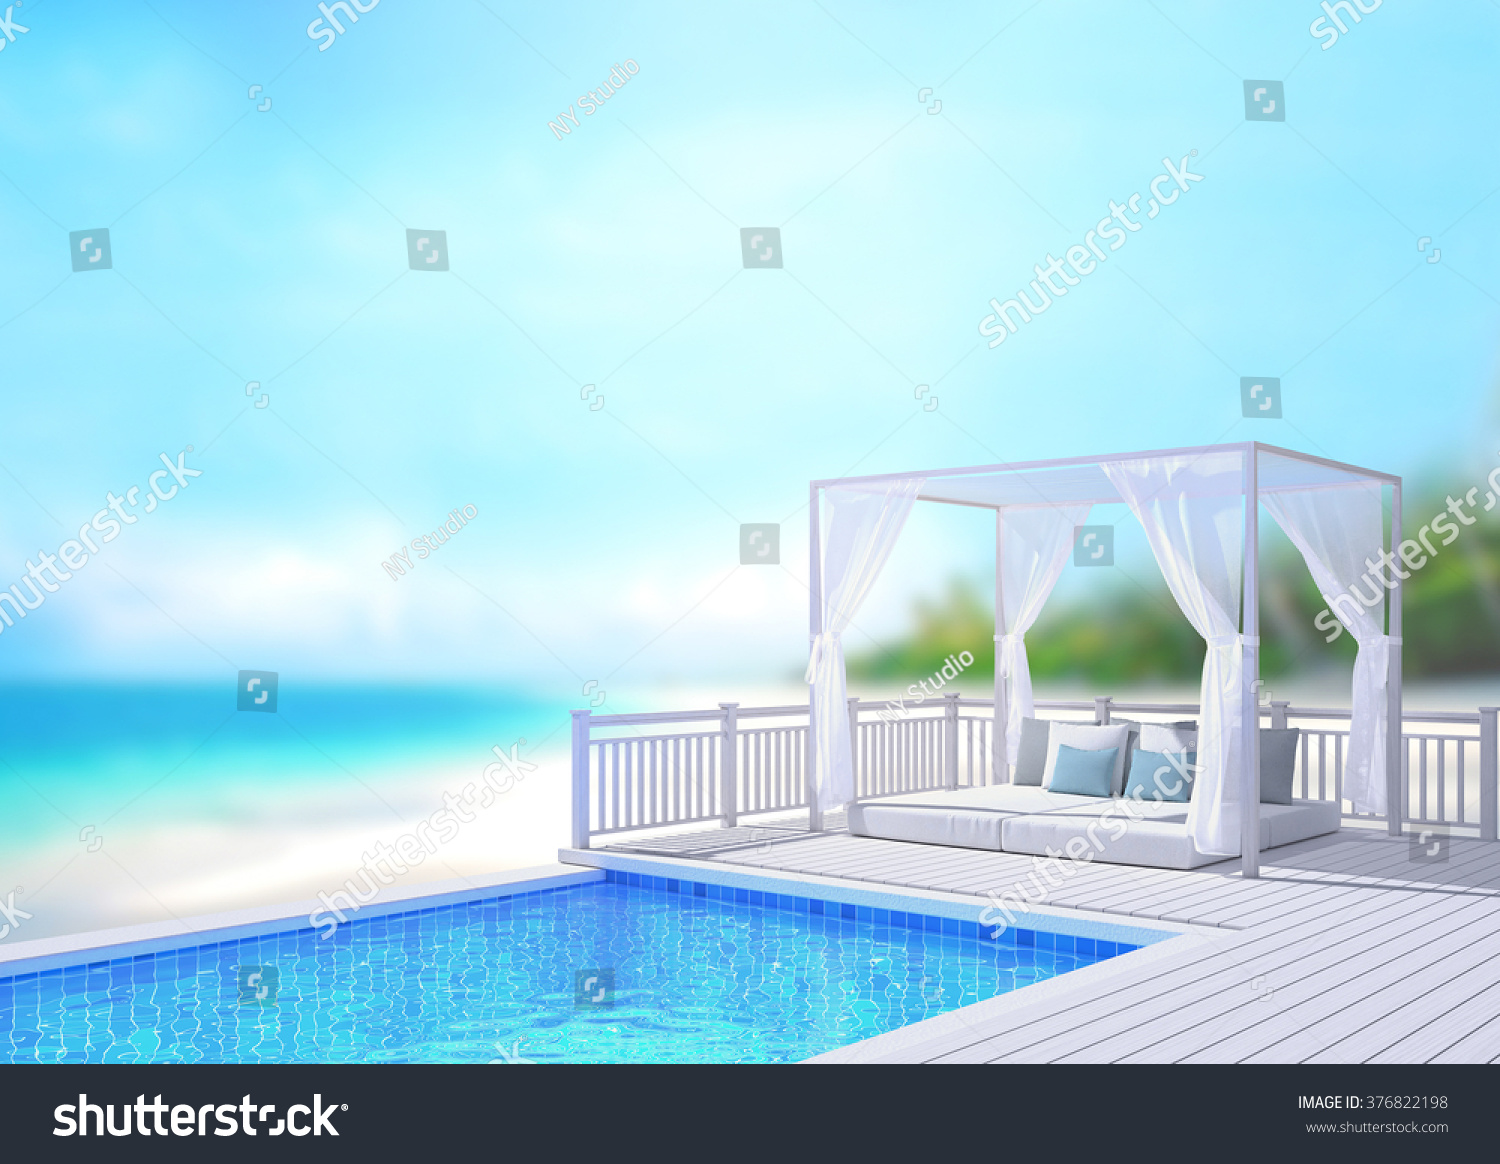 swimming pool terrace blur nature background stock illustration 376822198 shutterstock. Black Bedroom Furniture Sets. Home Design Ideas